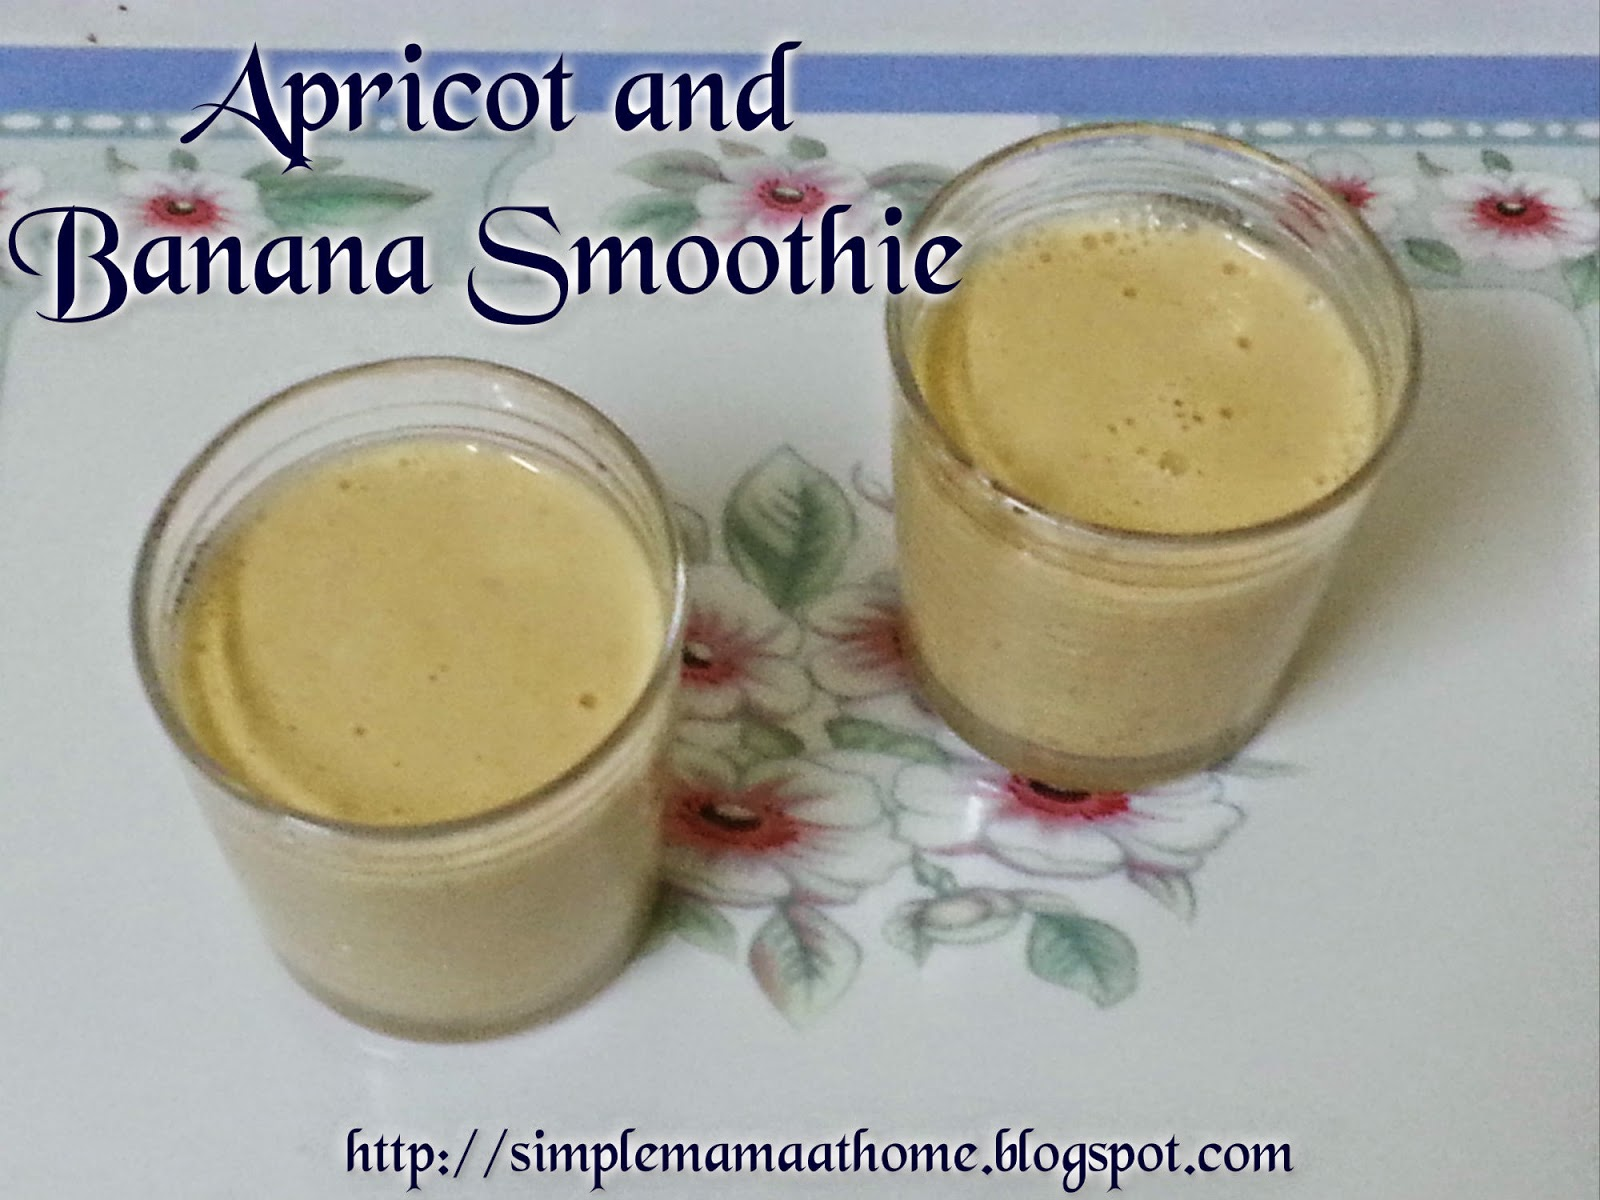 Apricot and Banana Smoothie